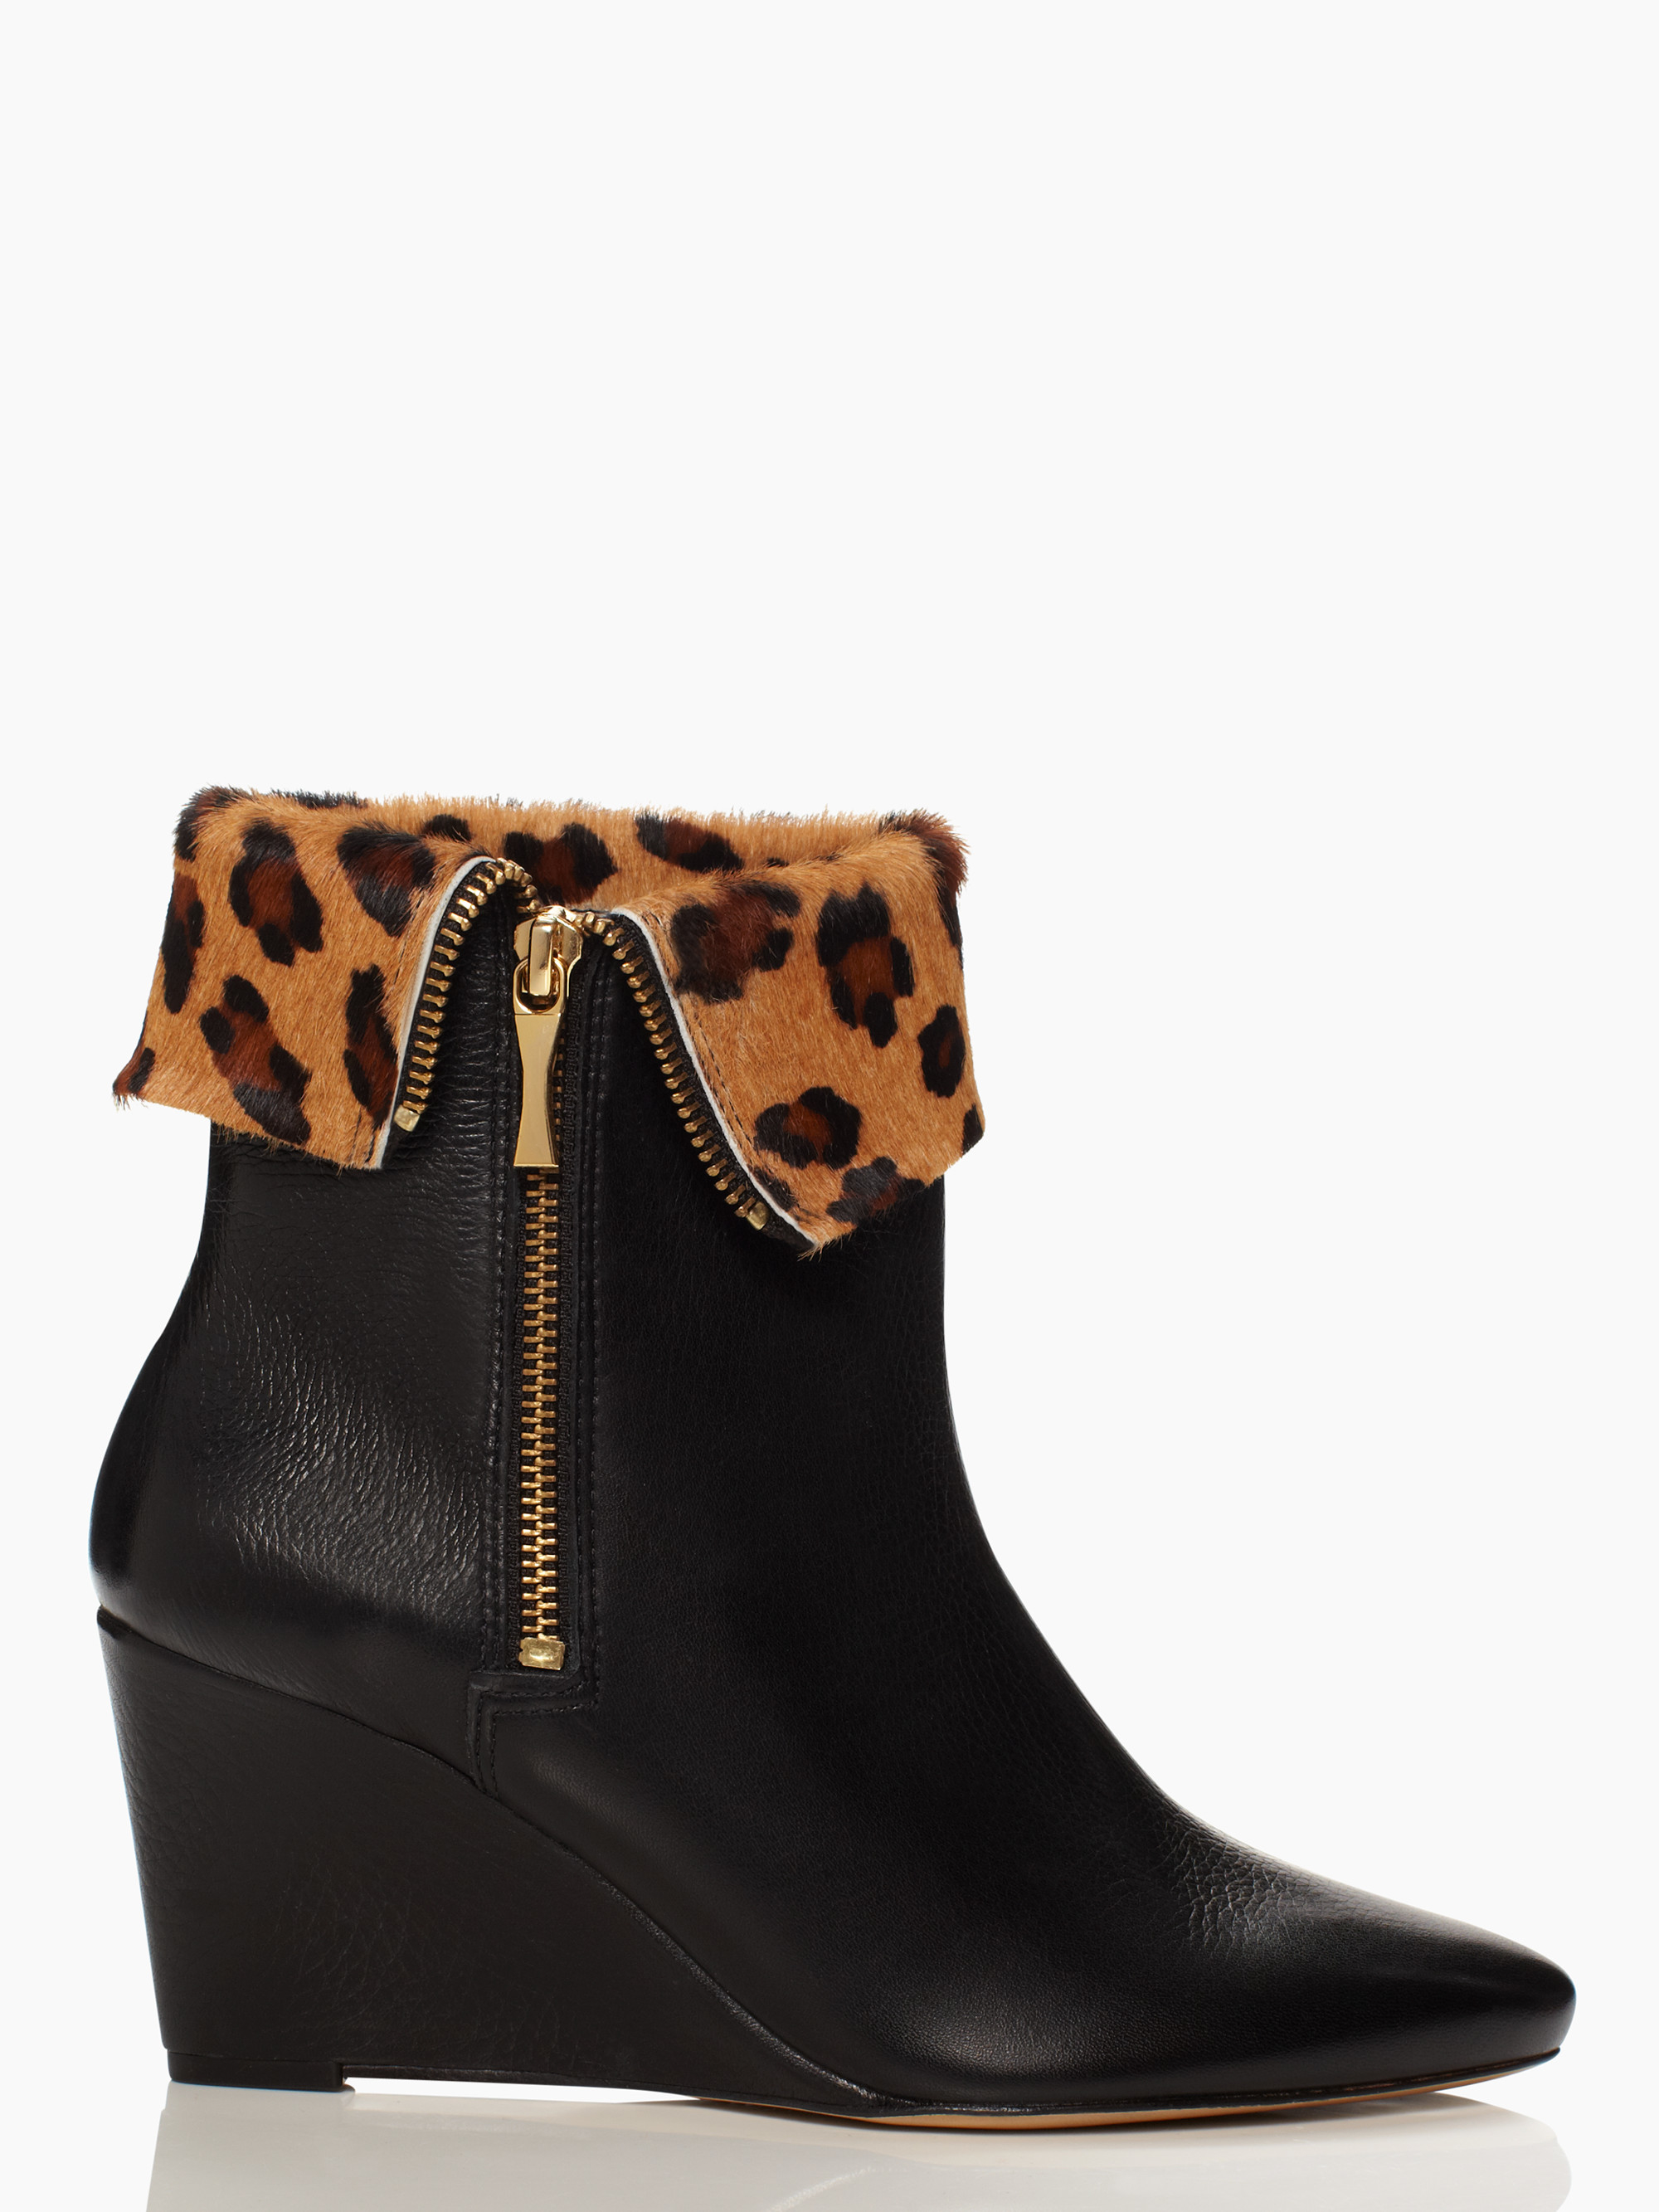 3ec1a960b62d Lyst - Kate Spade Volte Wedge Booties in Black